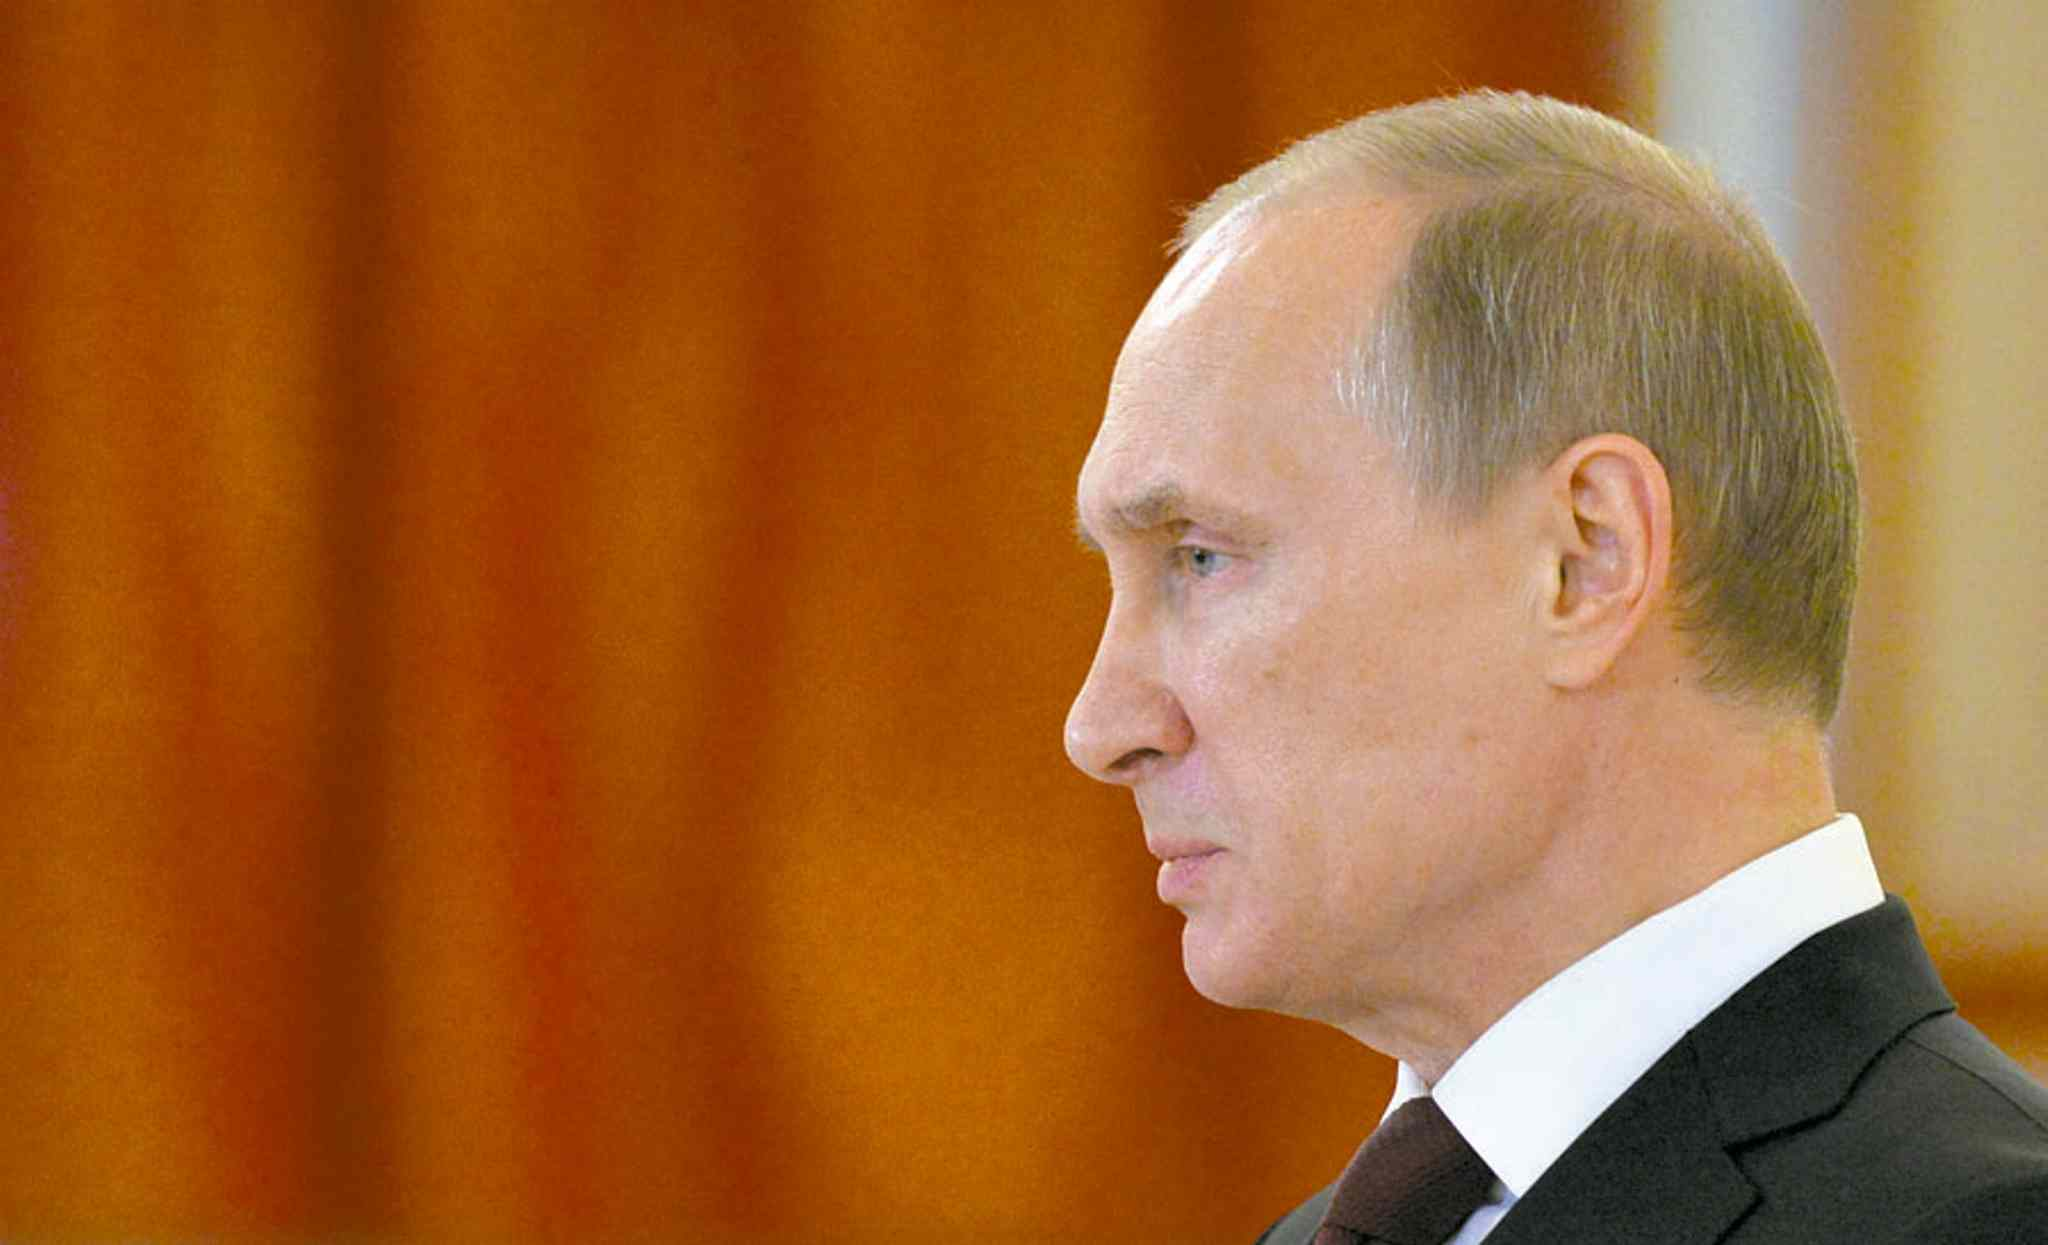 Russian President Vladimir Putin has to be mindful of Russia's global relationships.